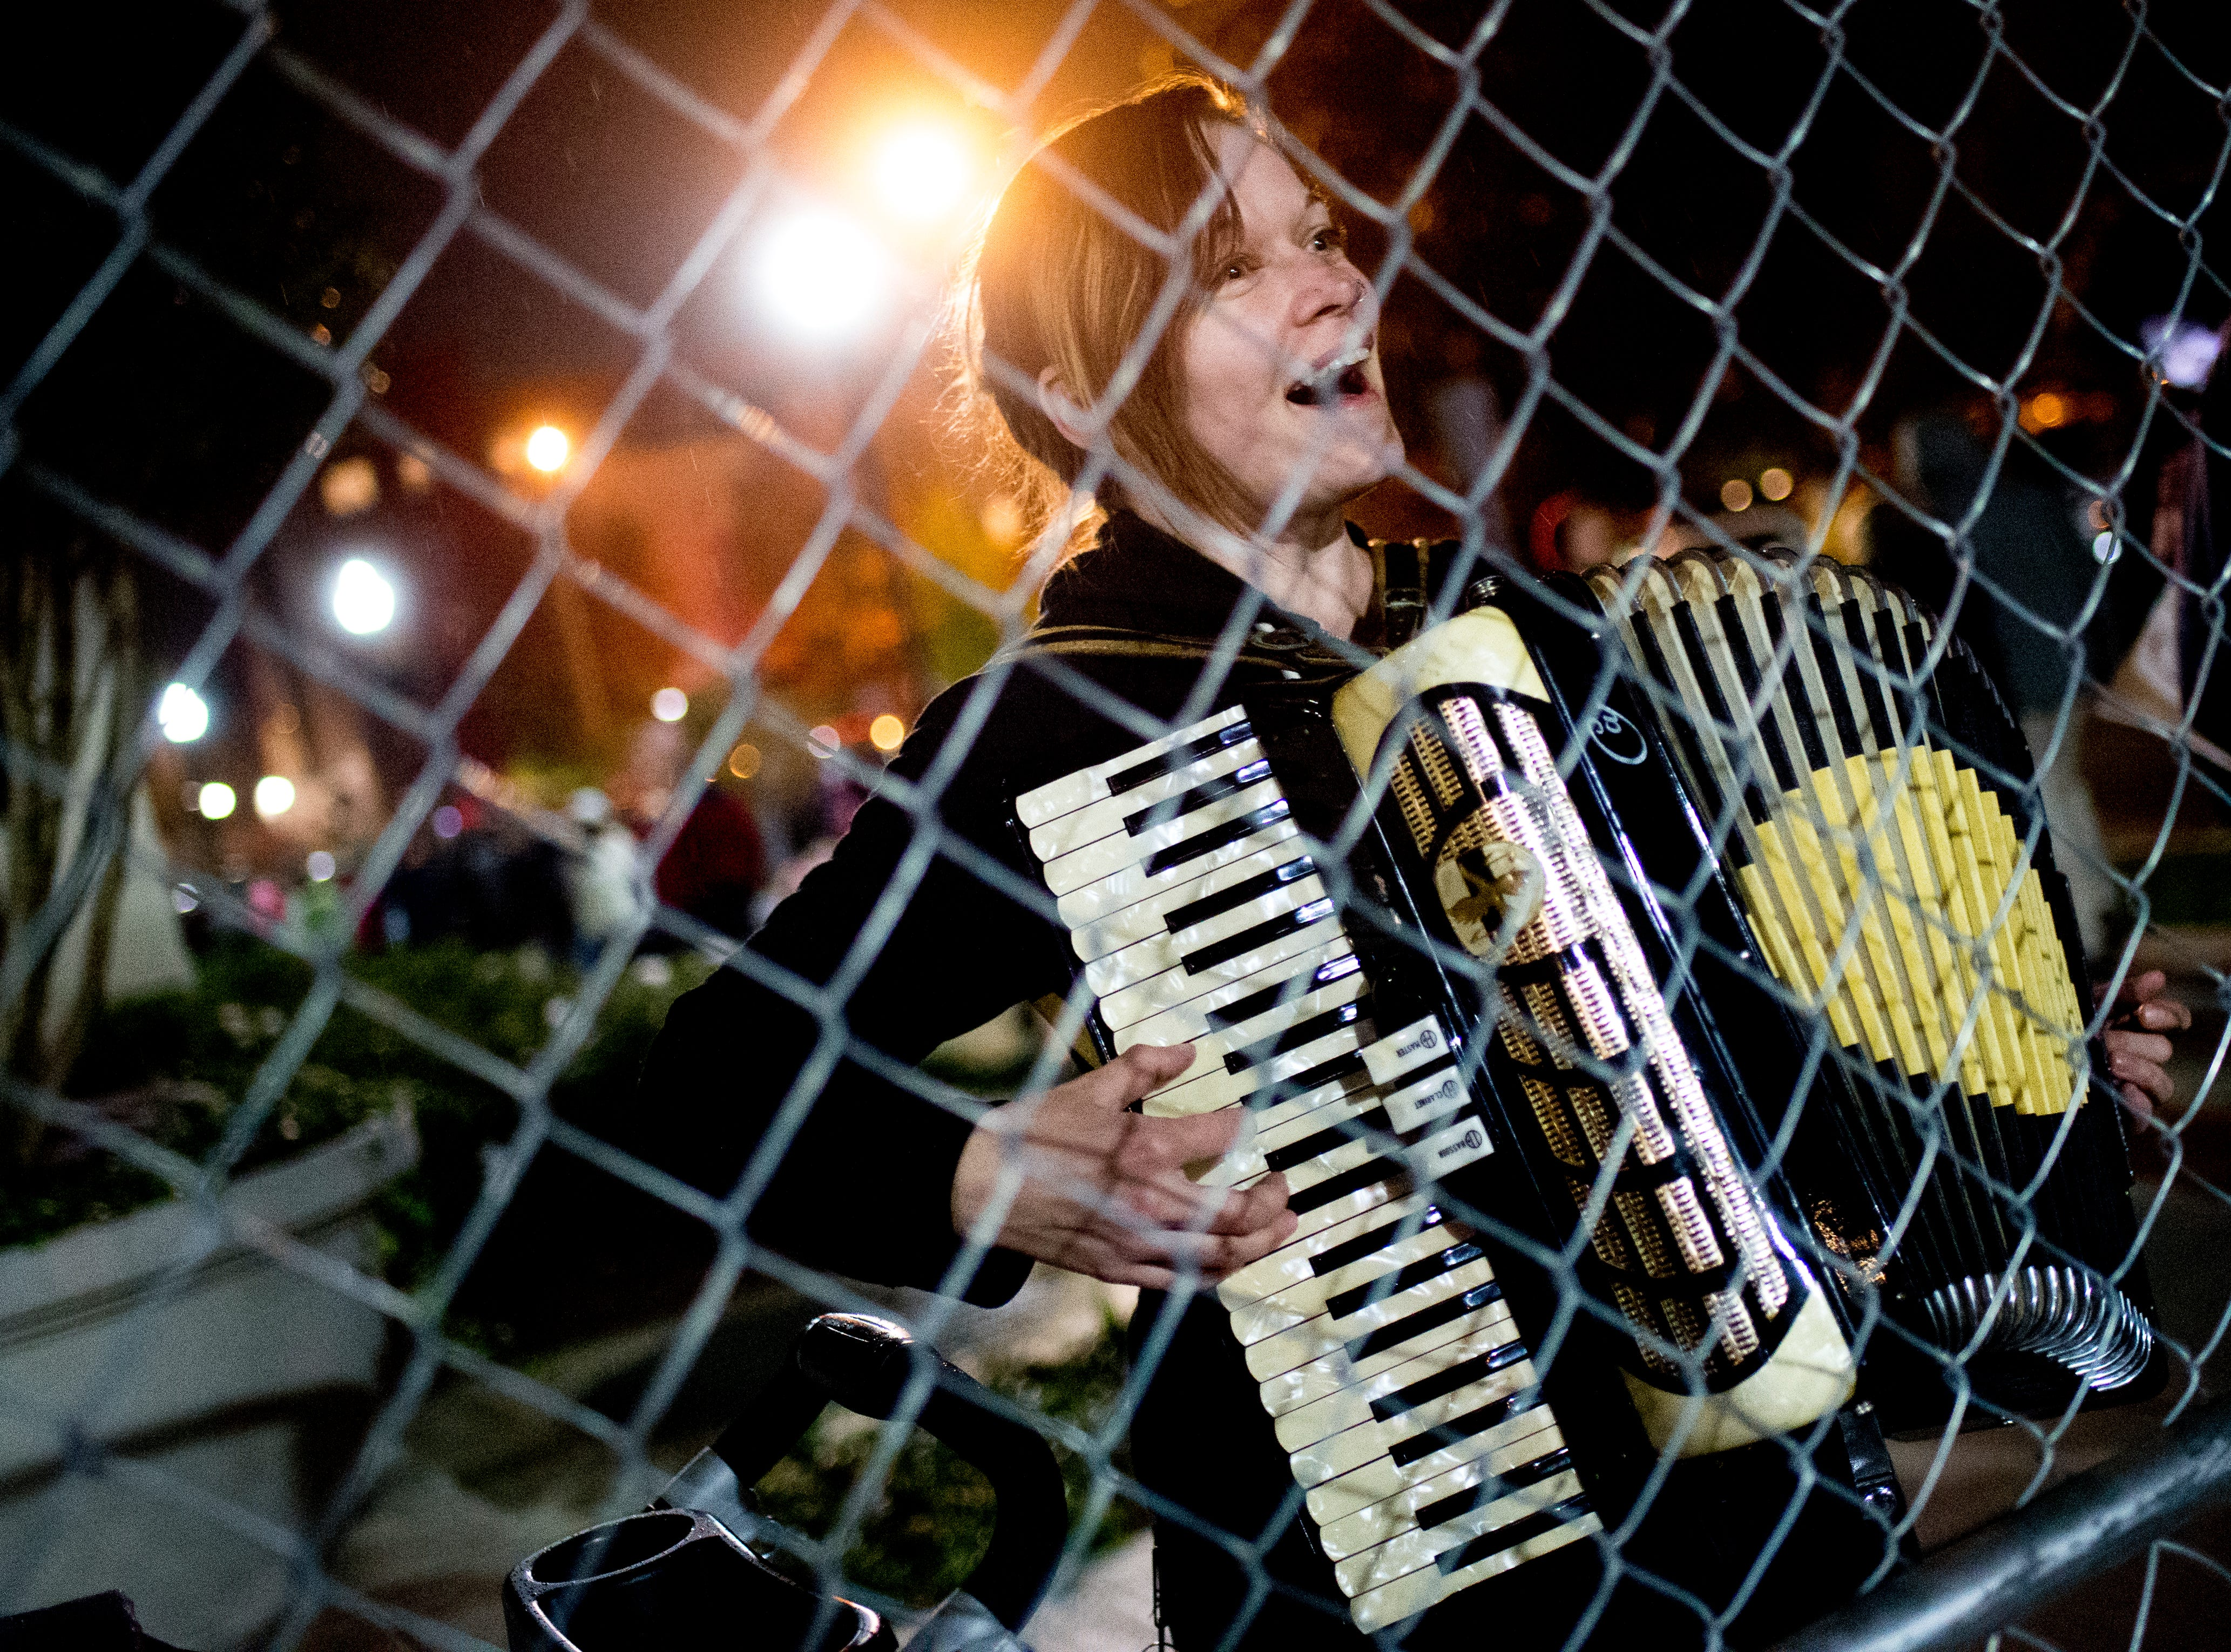 """Amanda Cagle, of Chattanooga, sings in protest with her accordion during President Donald J. Trump's """"Make America Great Again"""" Rally at McKenzie Arena in Chattanooga, Tennessee on Sunday, November 4, 2018."""